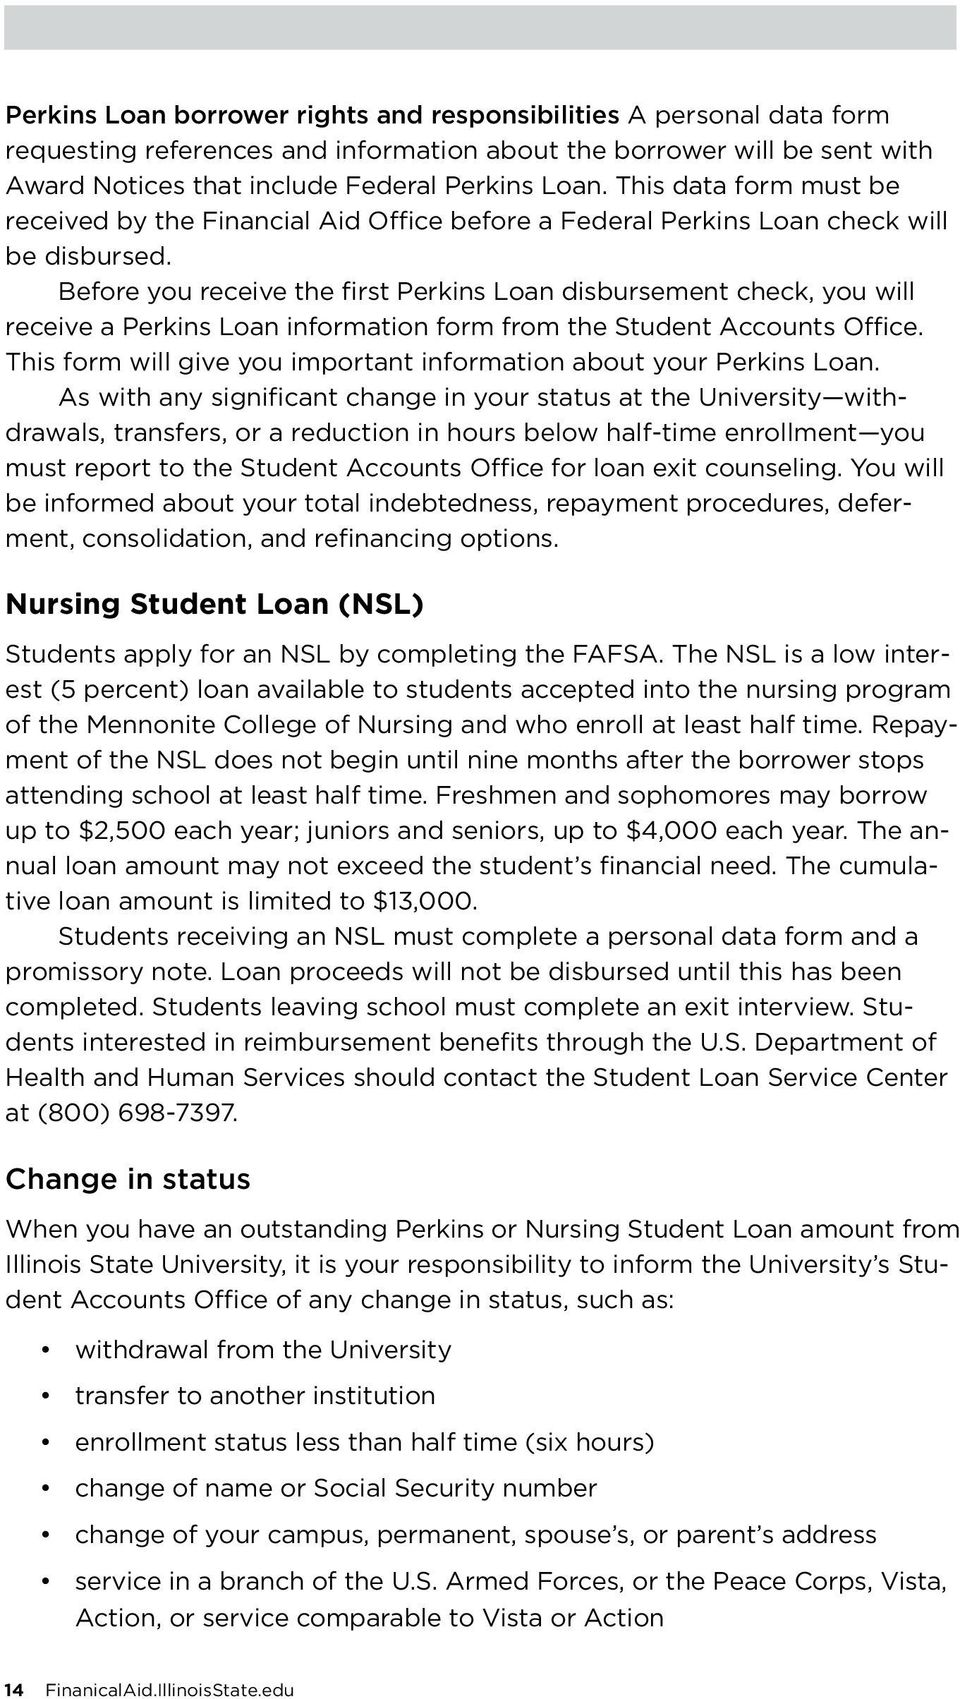 Before you receive the first Perkins Loan disbursement check, you will receive a Perkins Loan information form from the Student Accounts Office.